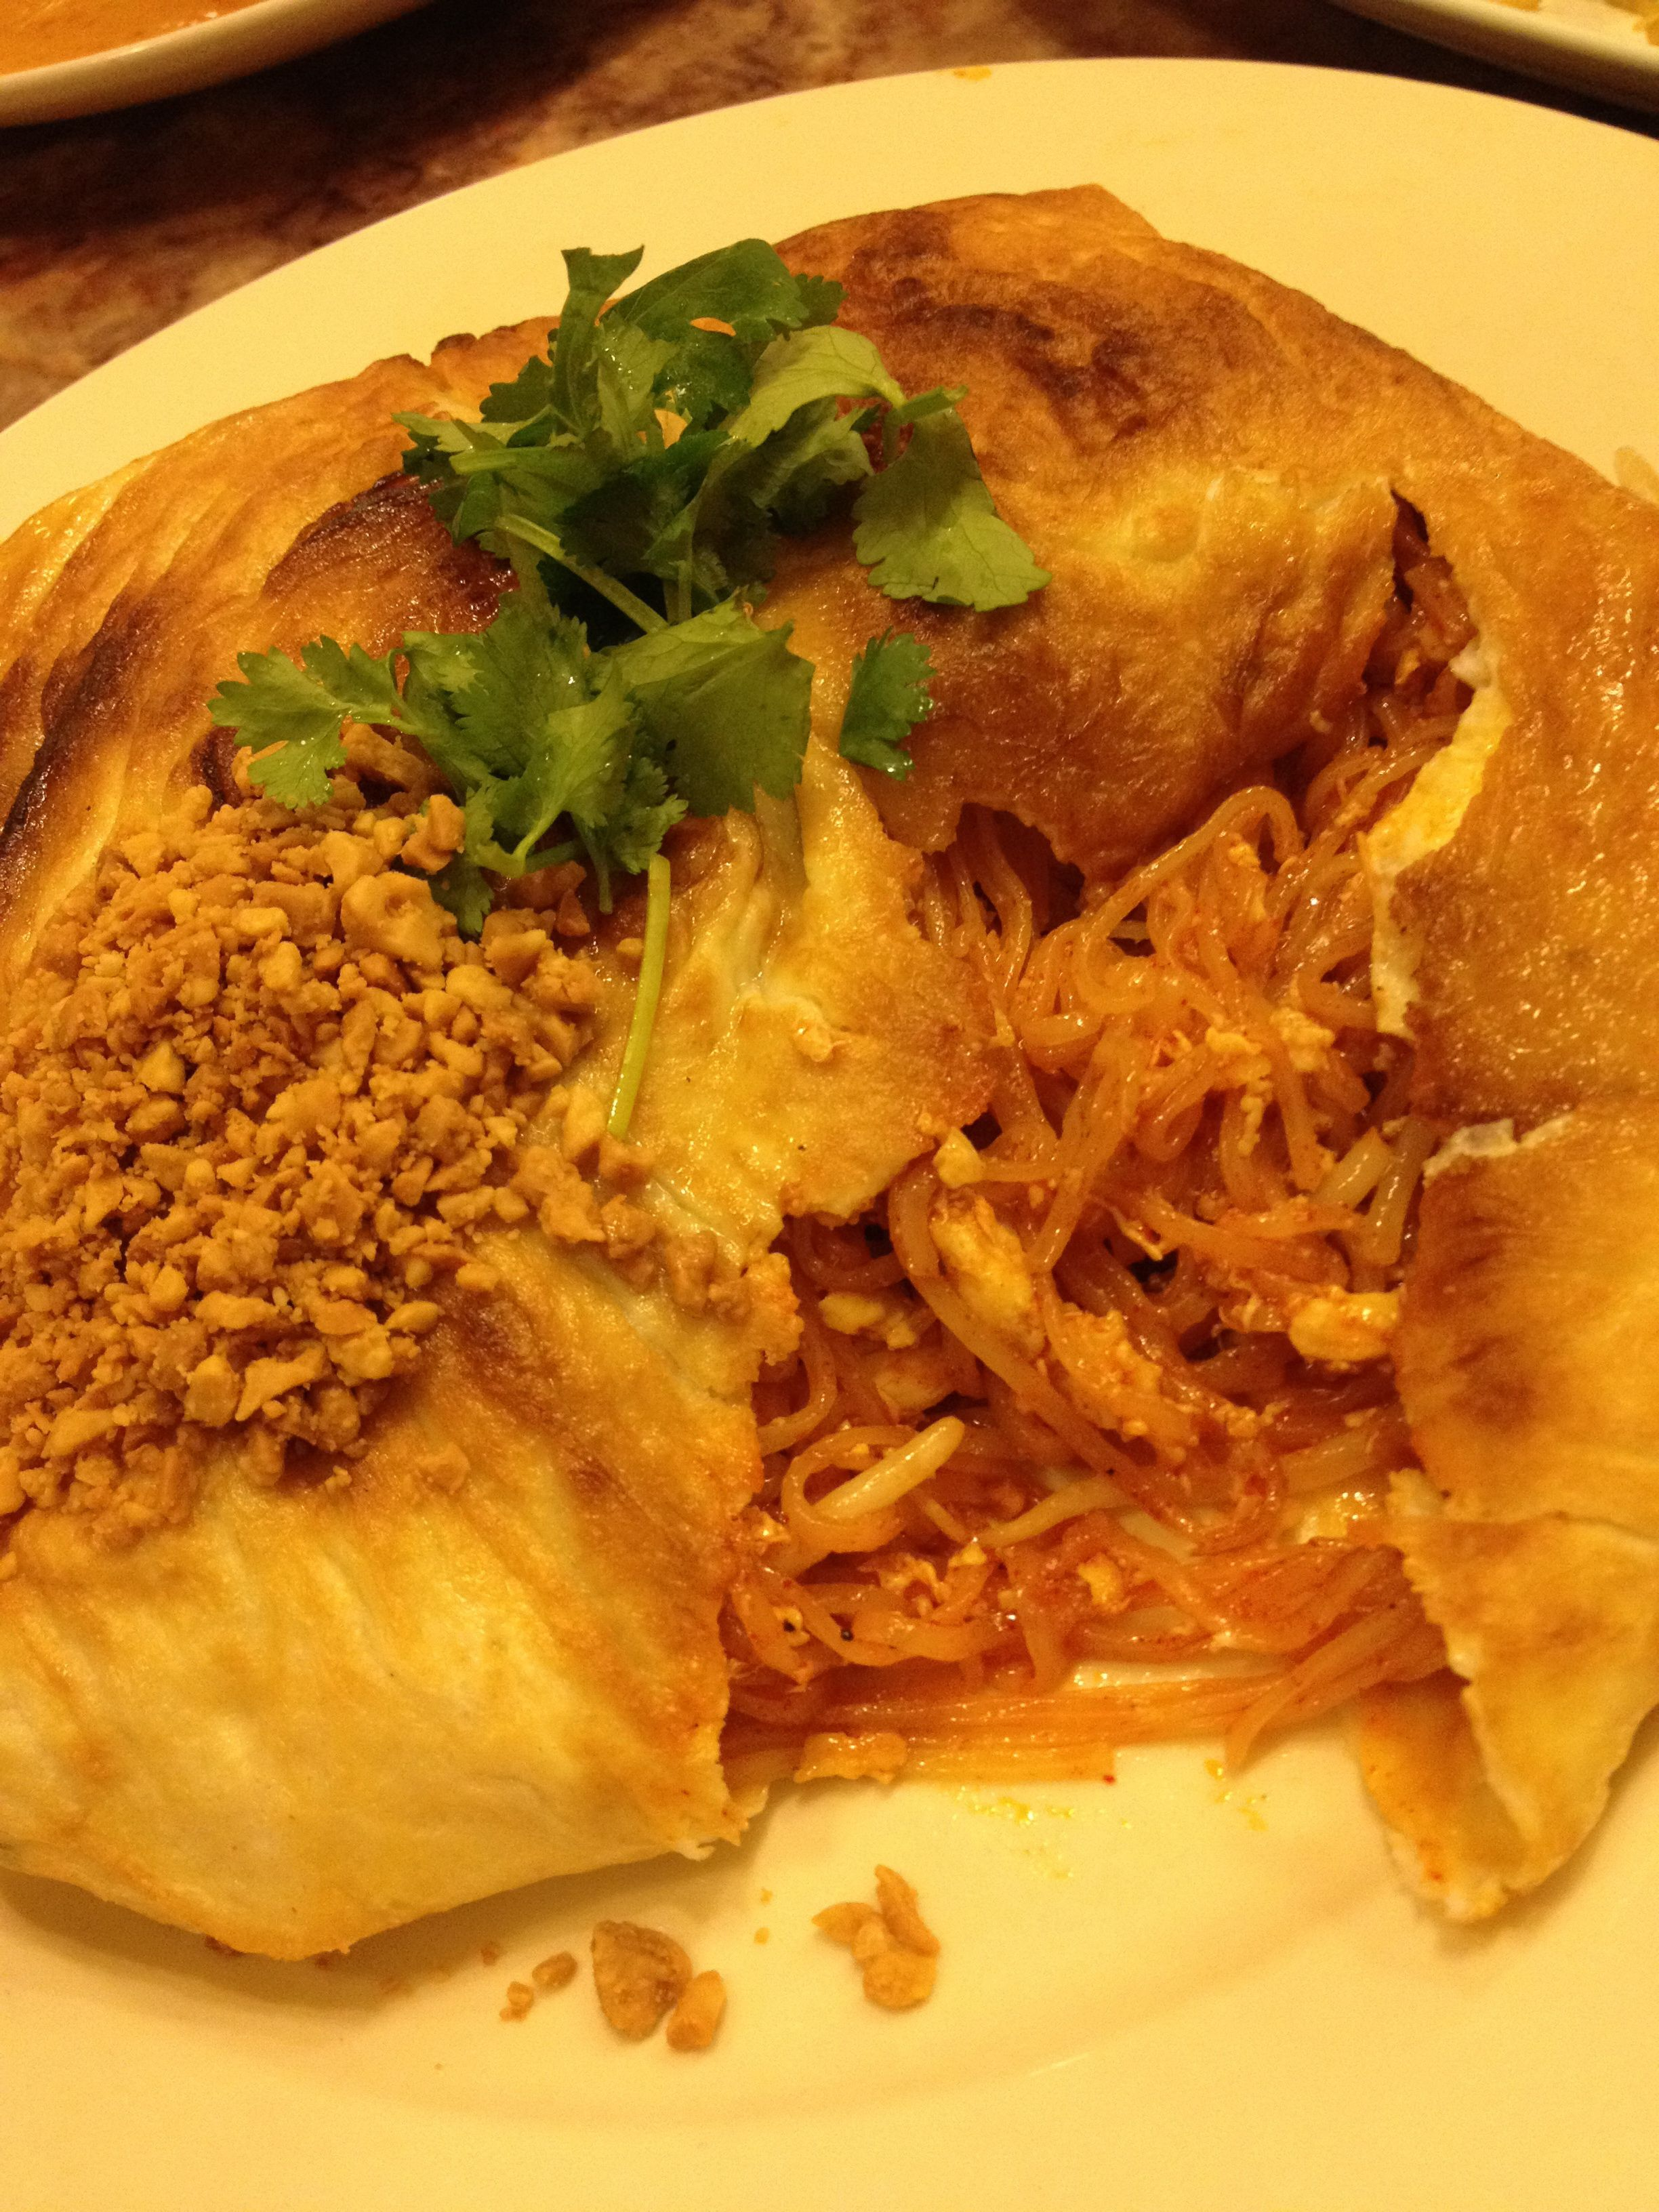 #Padthai omelette, free delivery @ Siam Spoon